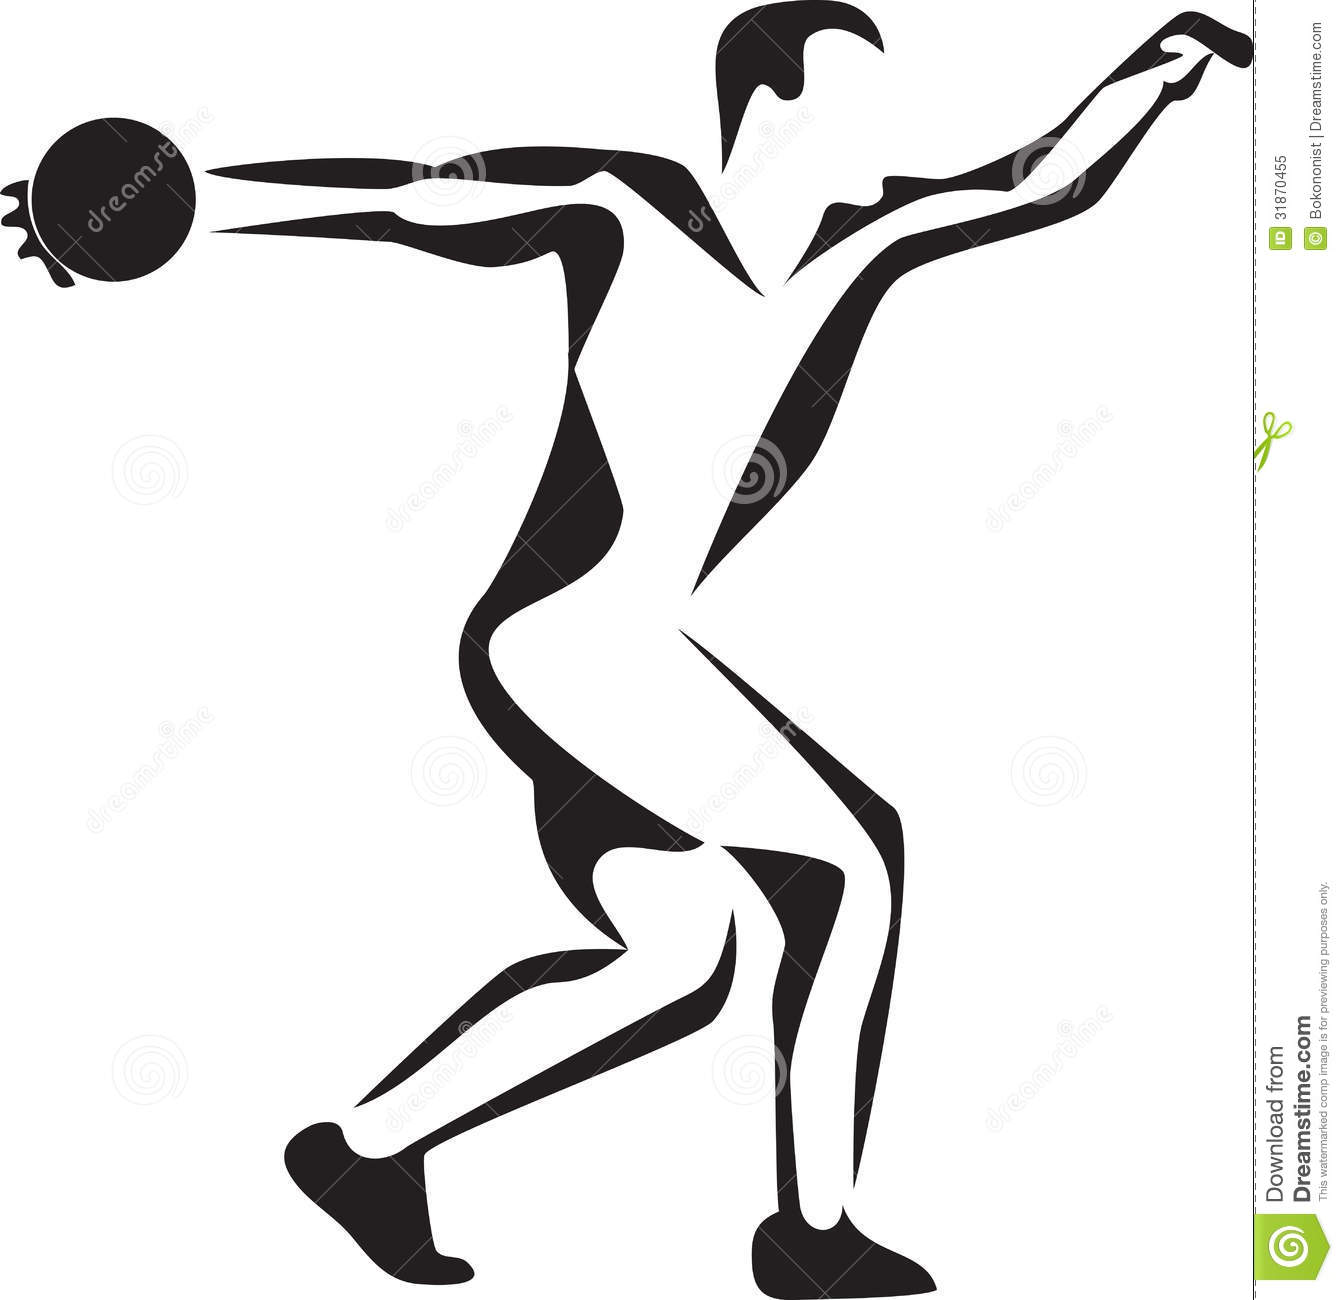 Discus thrower clipart png freeuse download Discus thrower clipart » Clipart Station png freeuse download